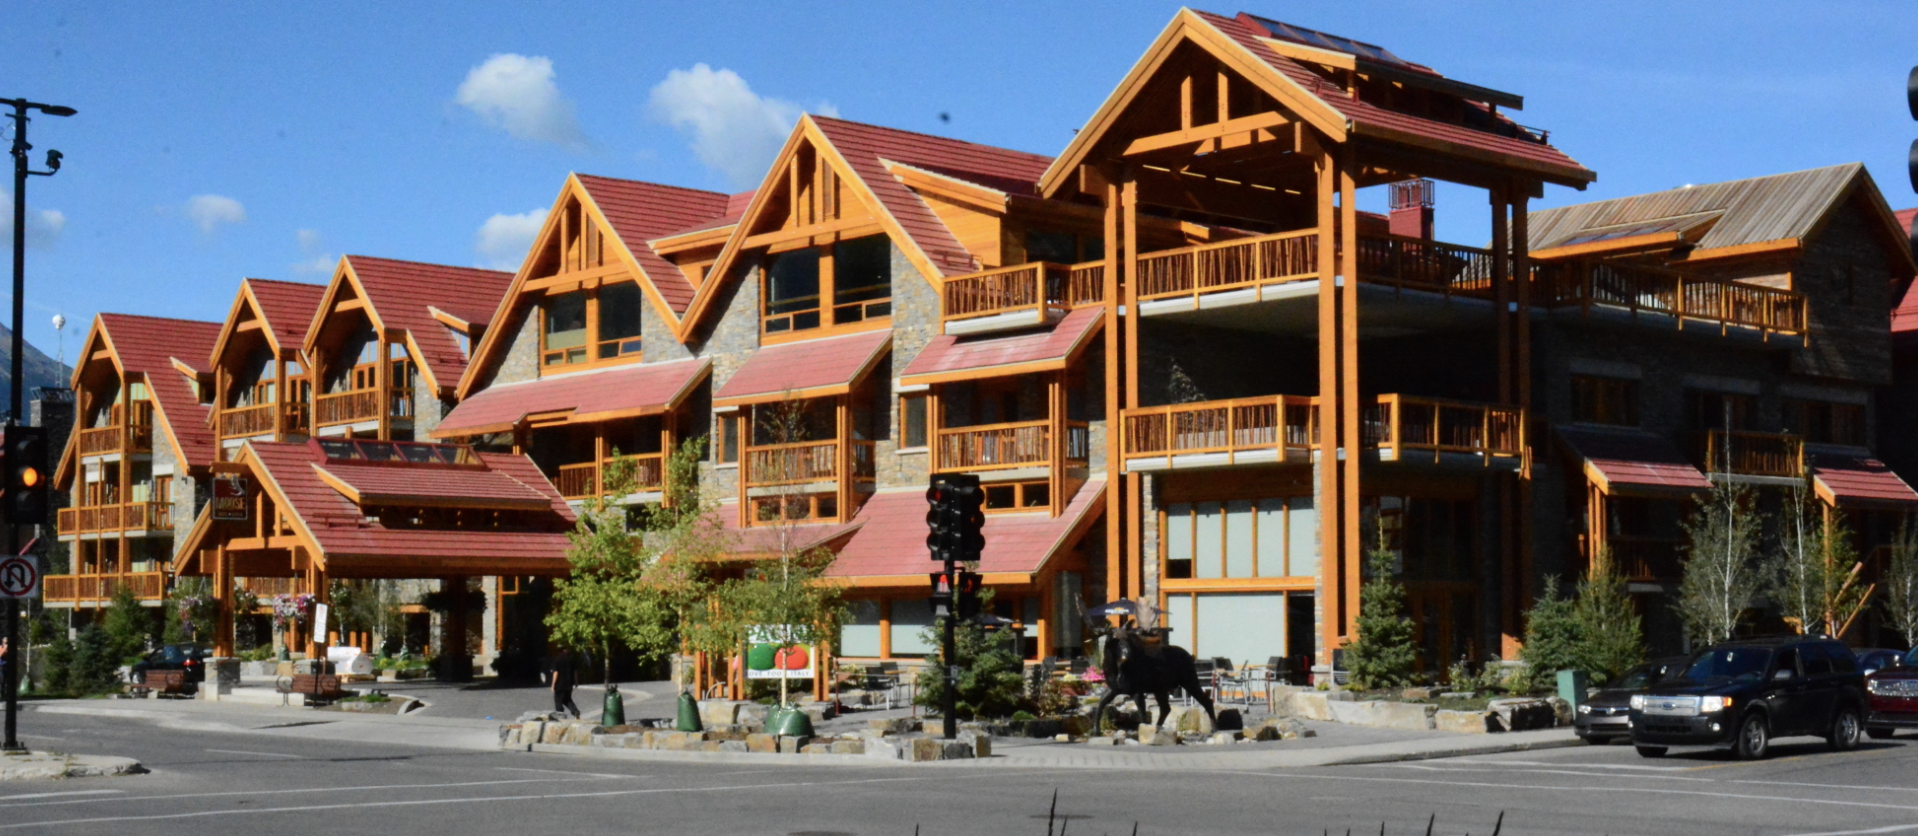 To ensure the new Moose Hotel & Suites in Banff, Alberta, could withstand the subarctic climate, designers specified a concrete tile roofing system.